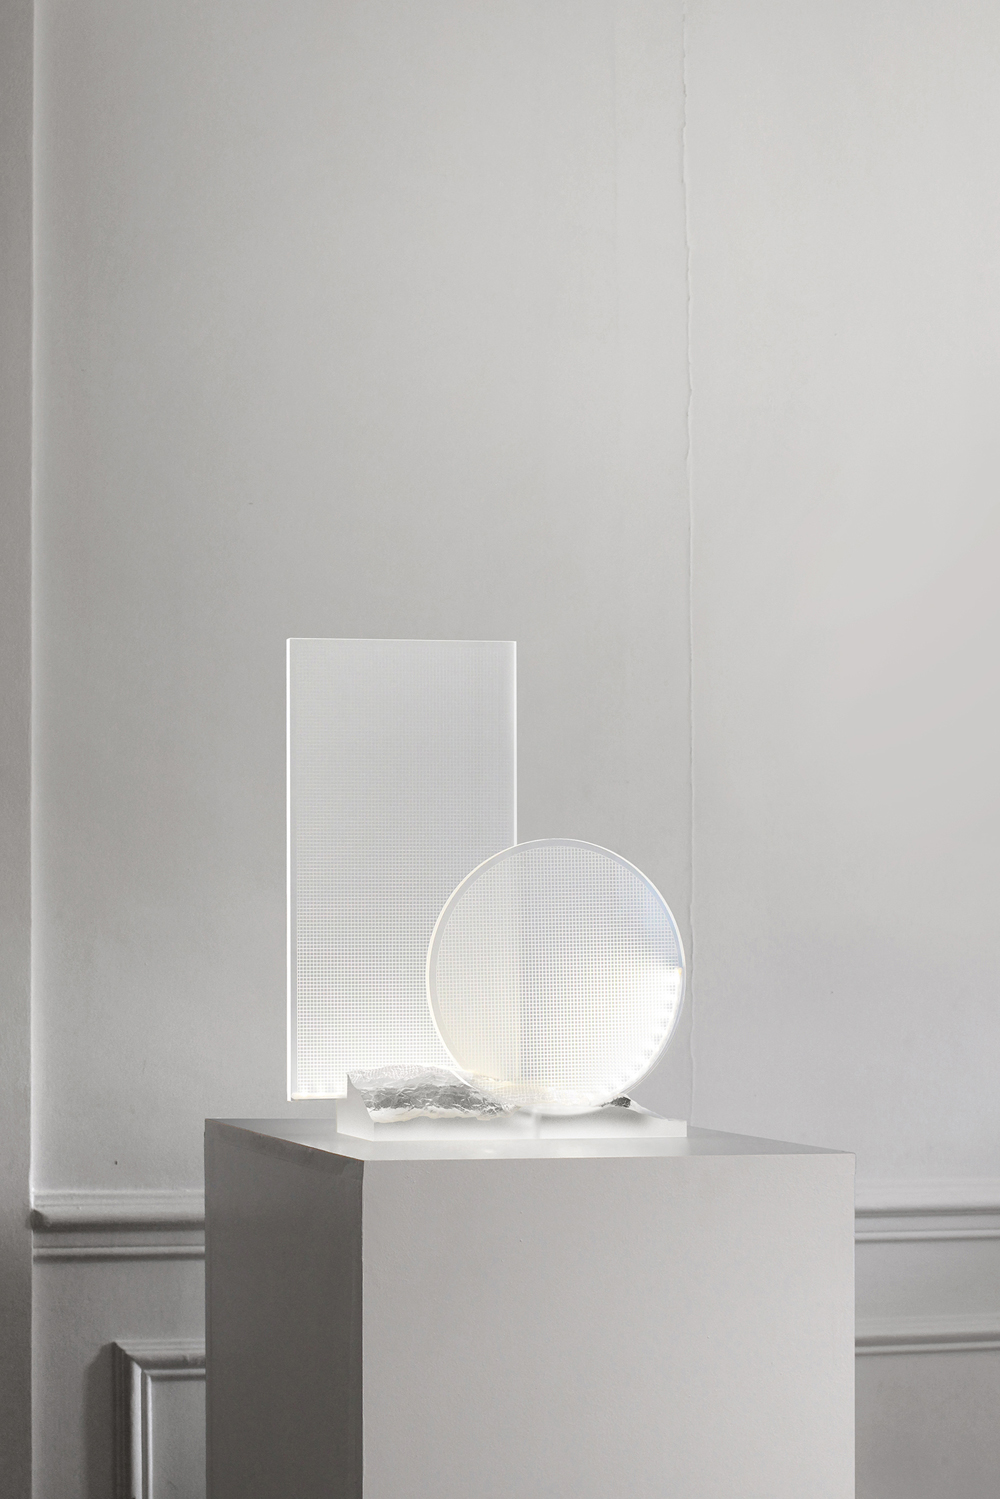 Paysage Transparent features a geometric display that rises from a landscape